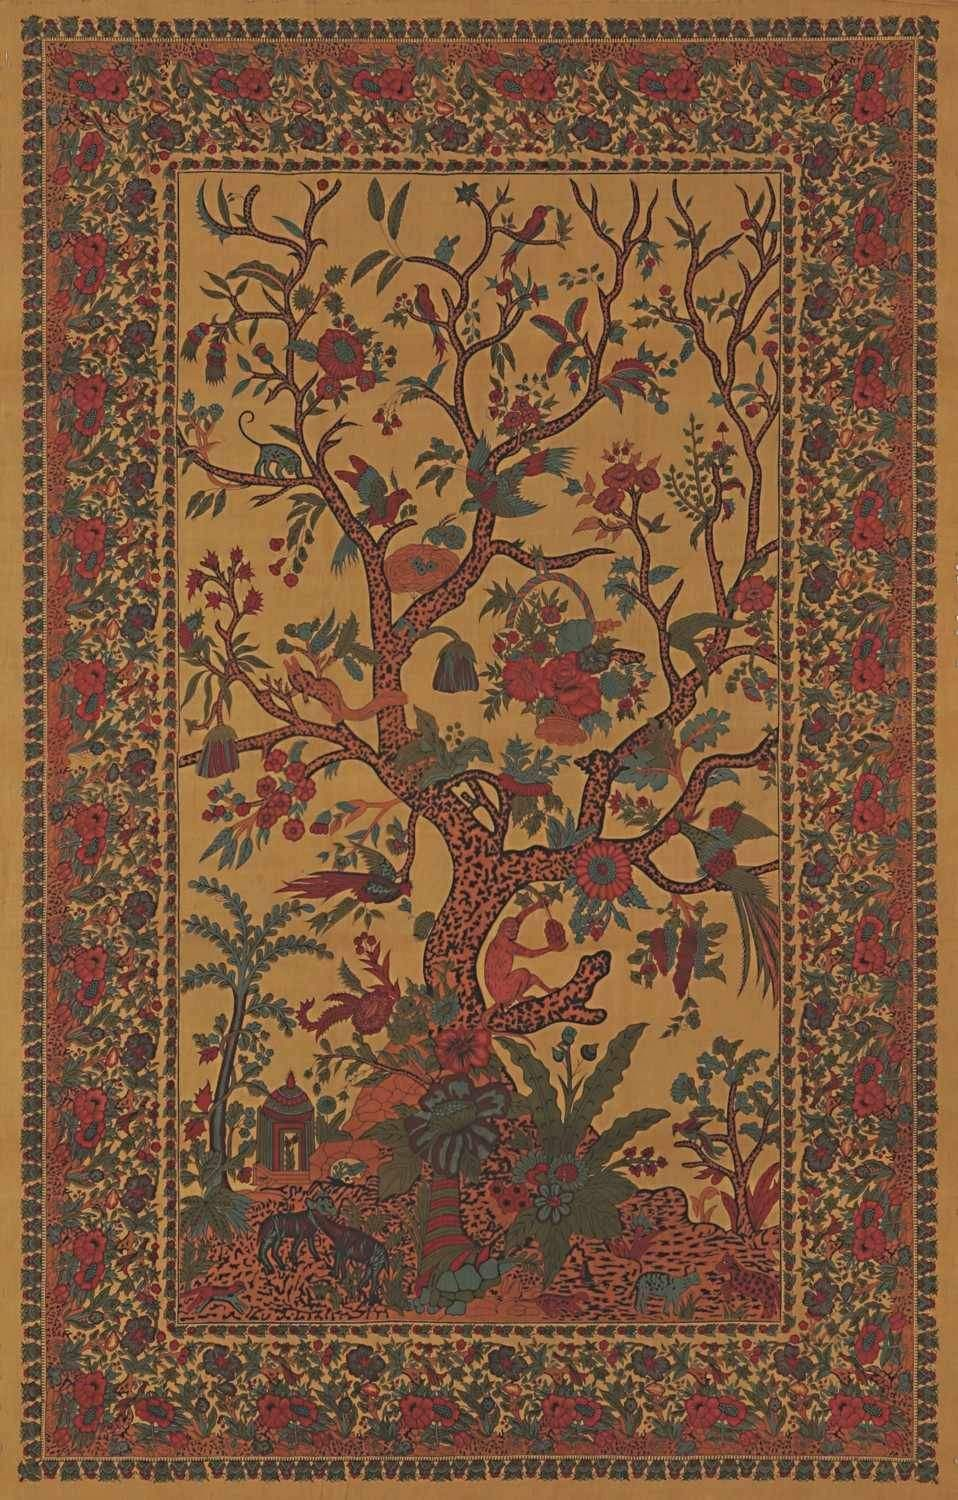 Handmade 100 Cotton Tree Of Life Tapestry Tablecloth Bedspread Gold Twin Full Queen King Tree Of Life Tapestry Tree Tapestry Tapestry